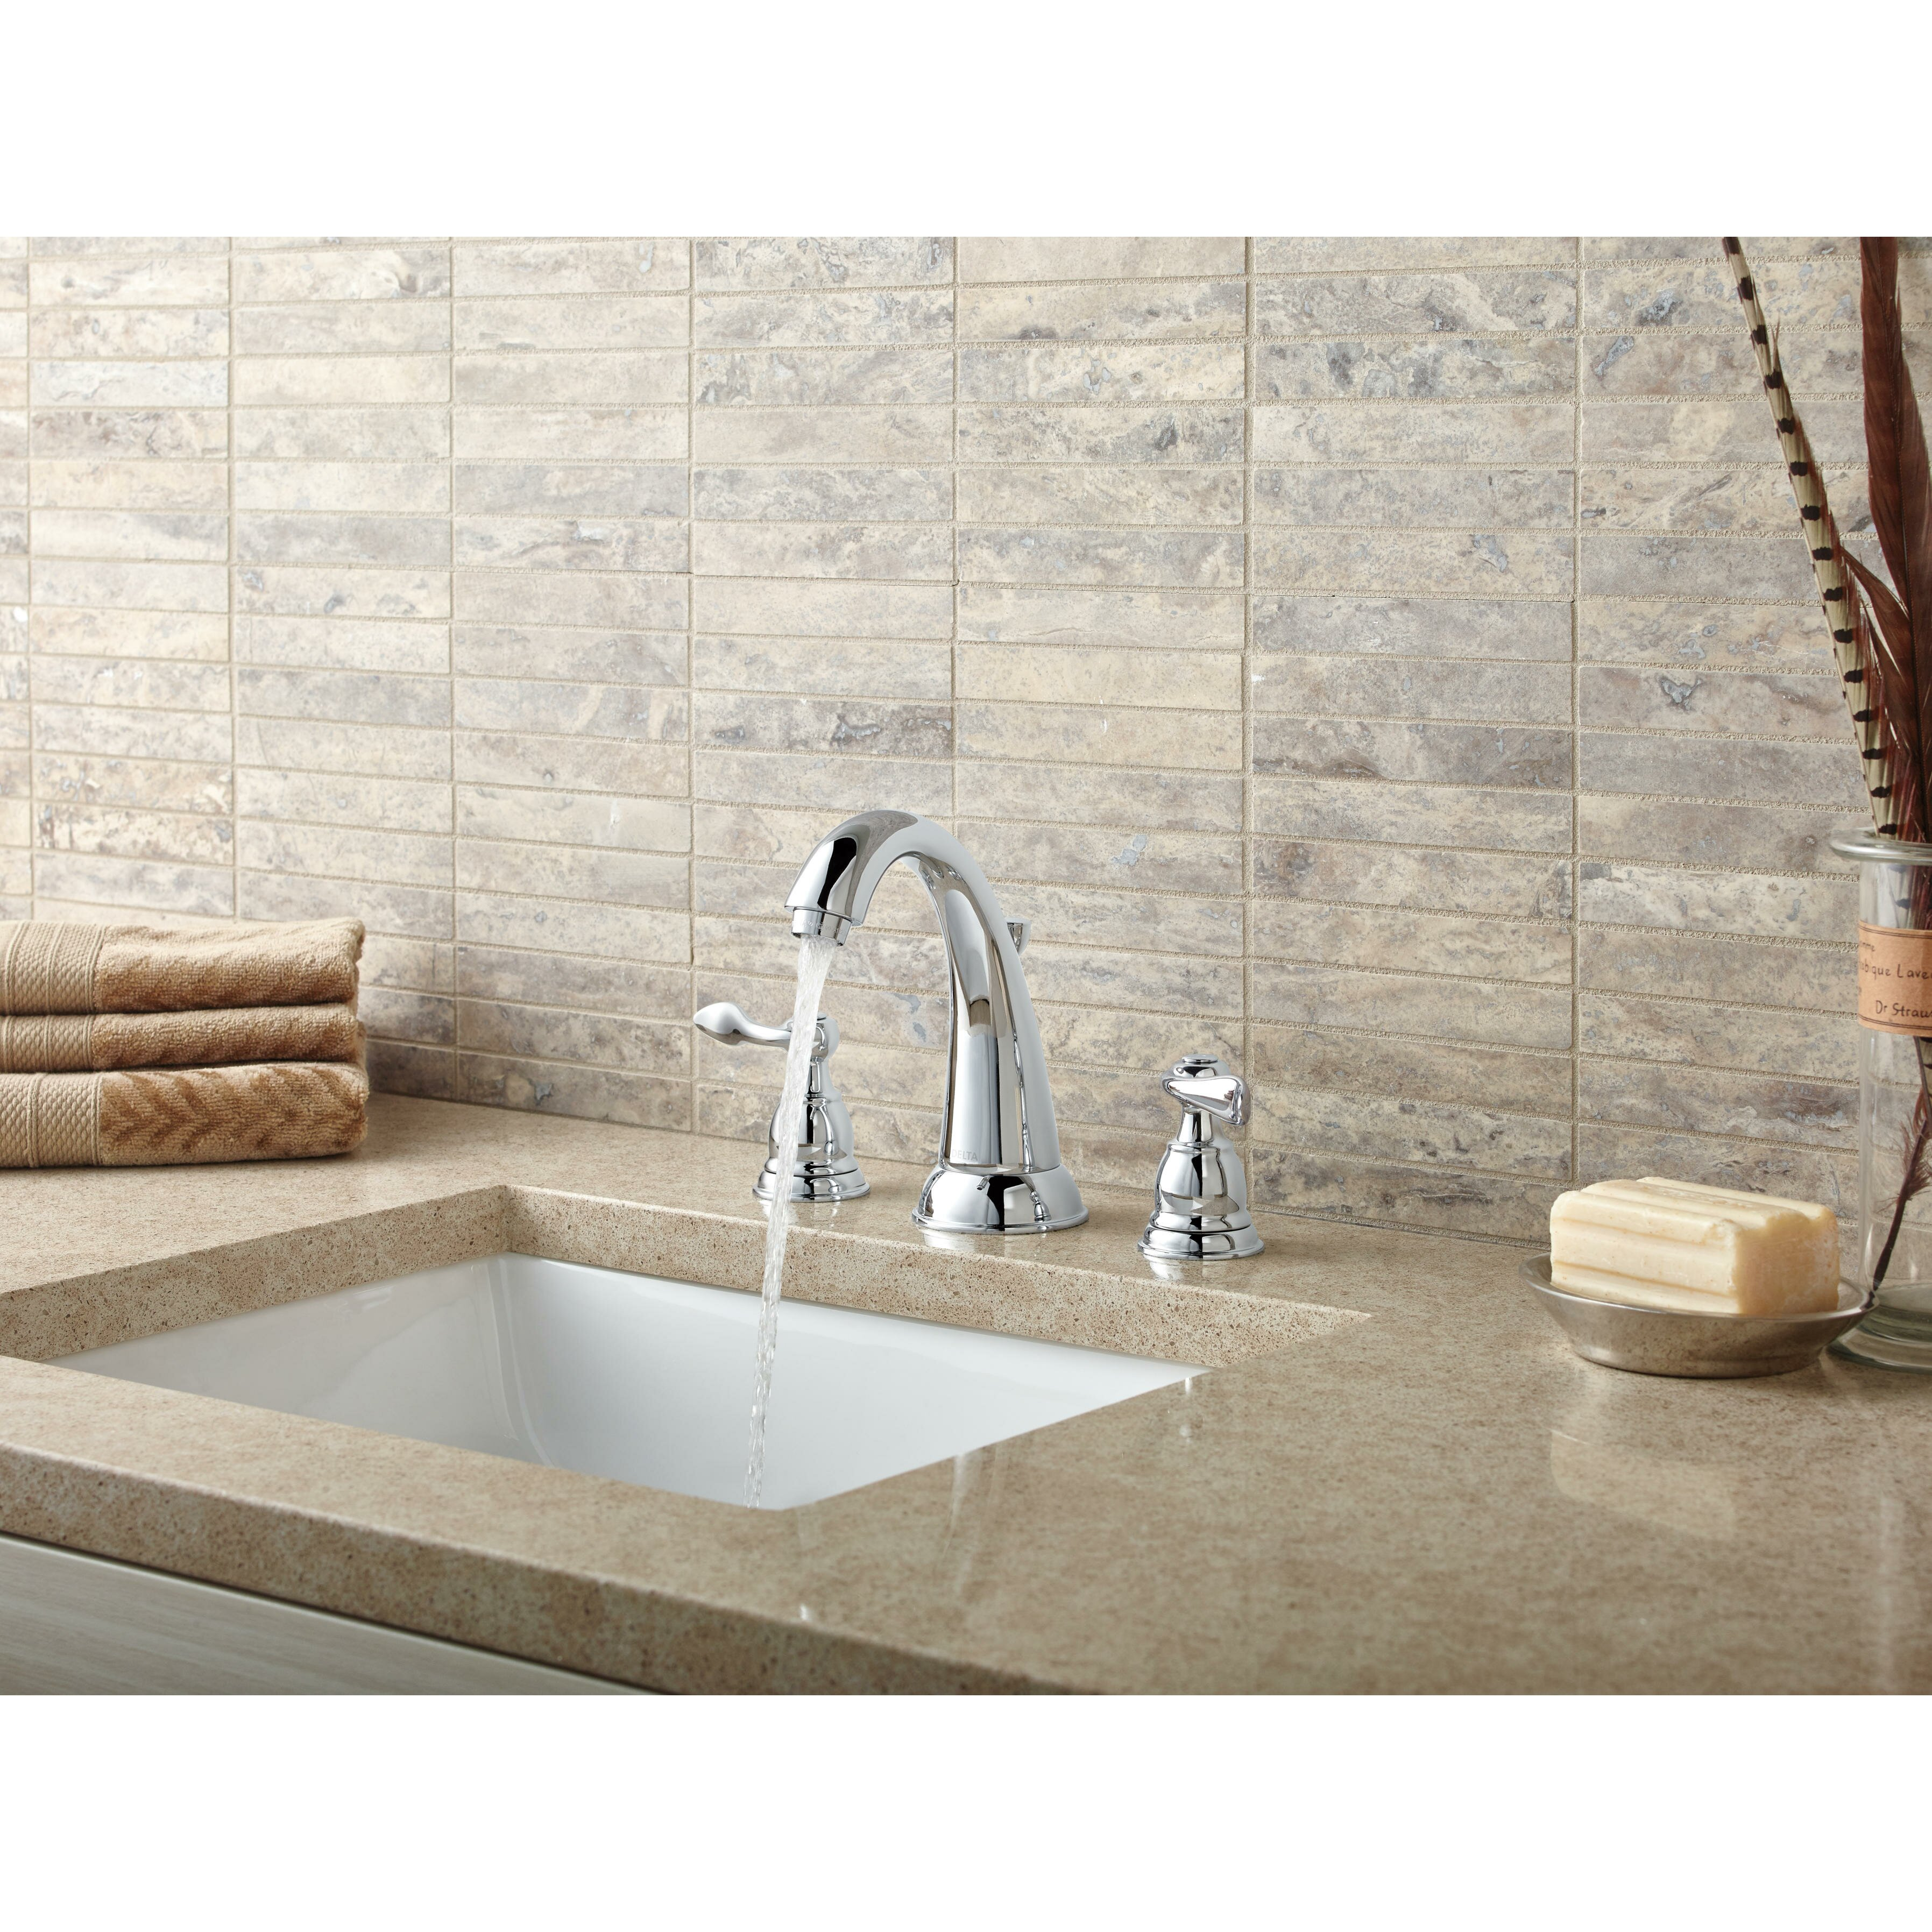 Discontinued Delta Kitchen Faucets Delta Windemere Widespread Bathroom Faucet With Double Lever